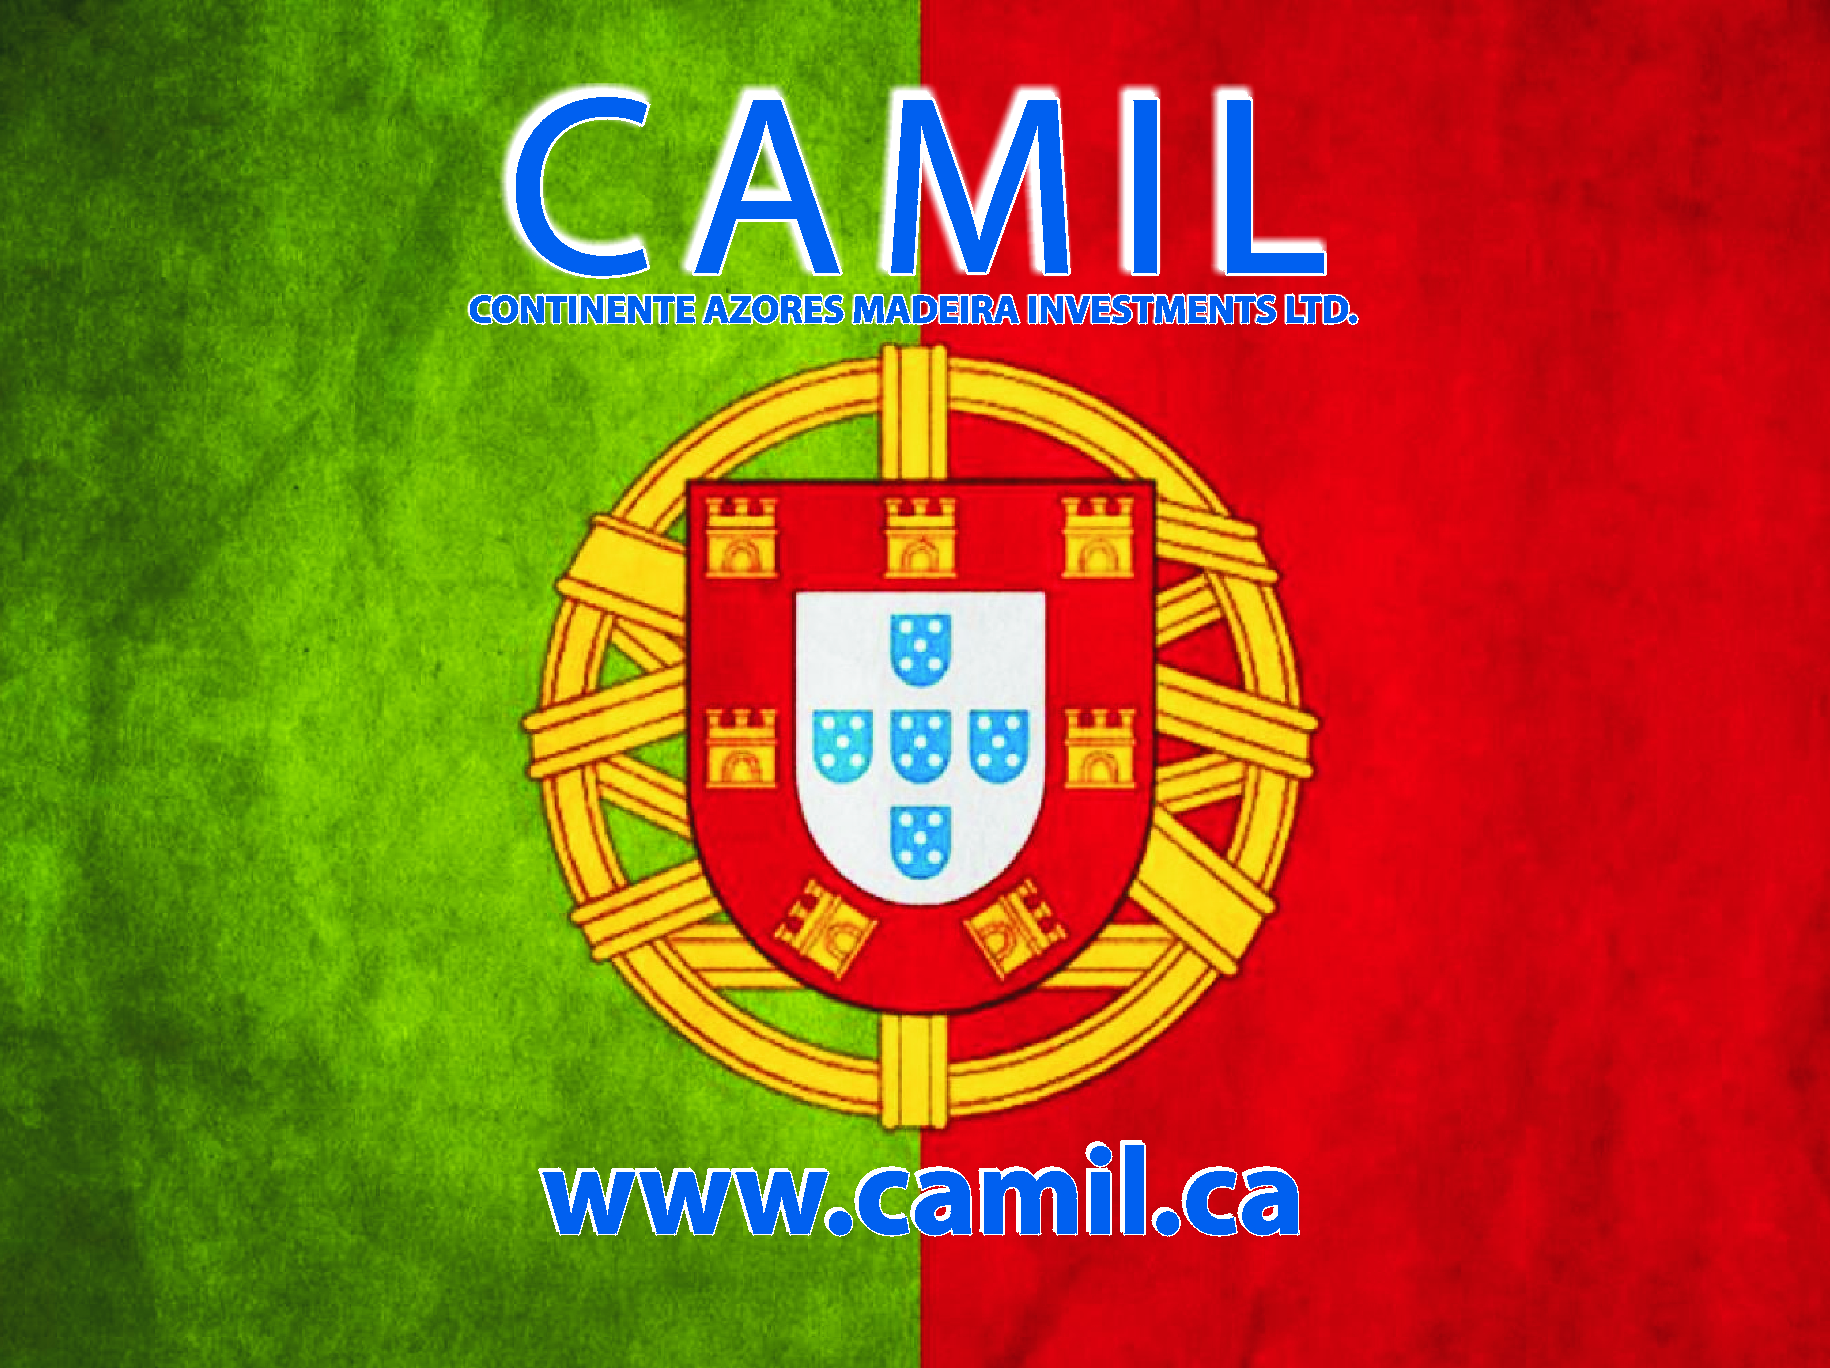 Camil - Continent Azores Madeira Investments Inc